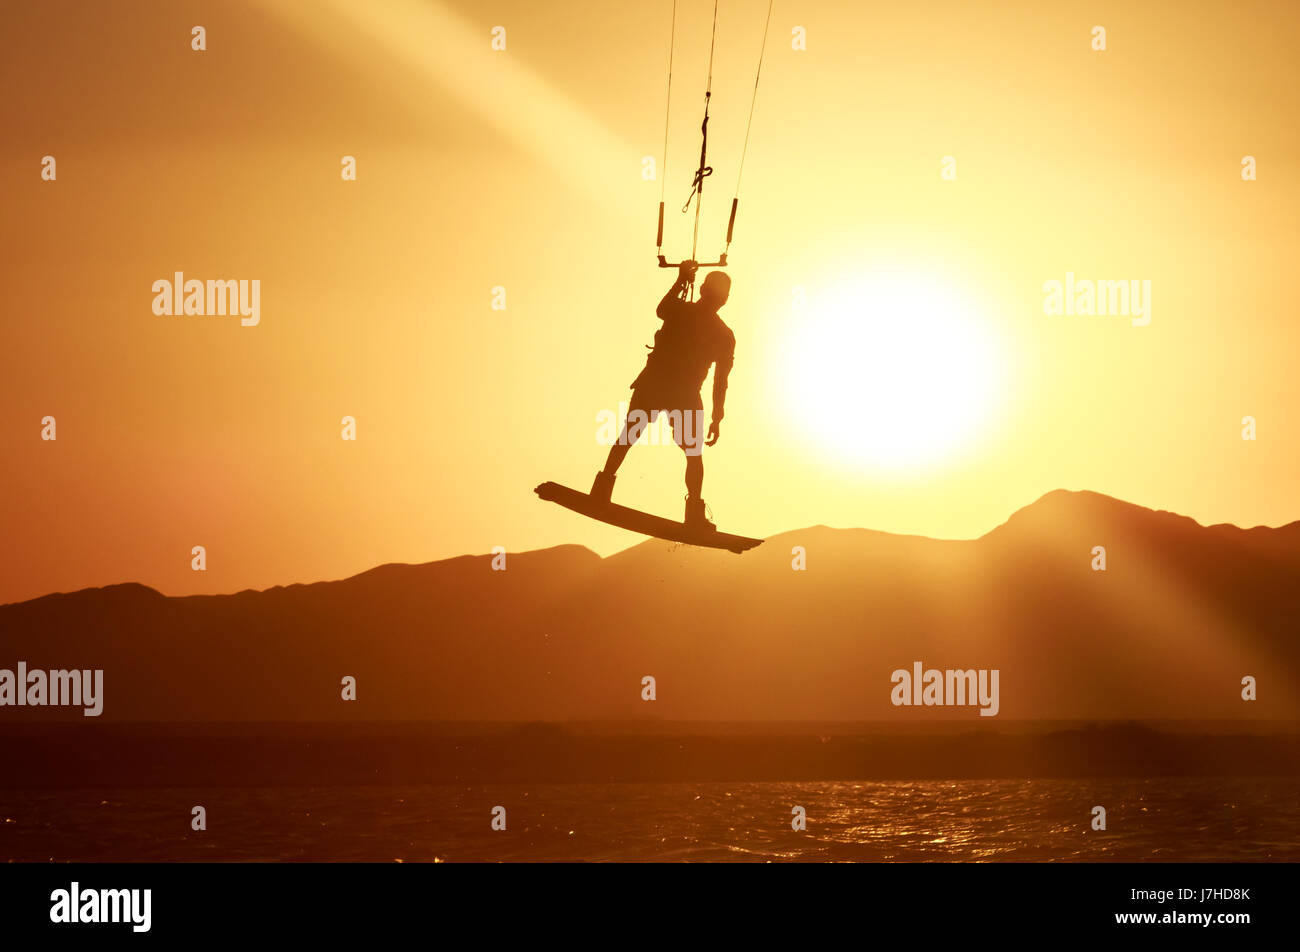 Kite boarder sportsman with kite under sunset sun, freestyle kiteboarding rider on the evening kite session, sunset - Stock Image